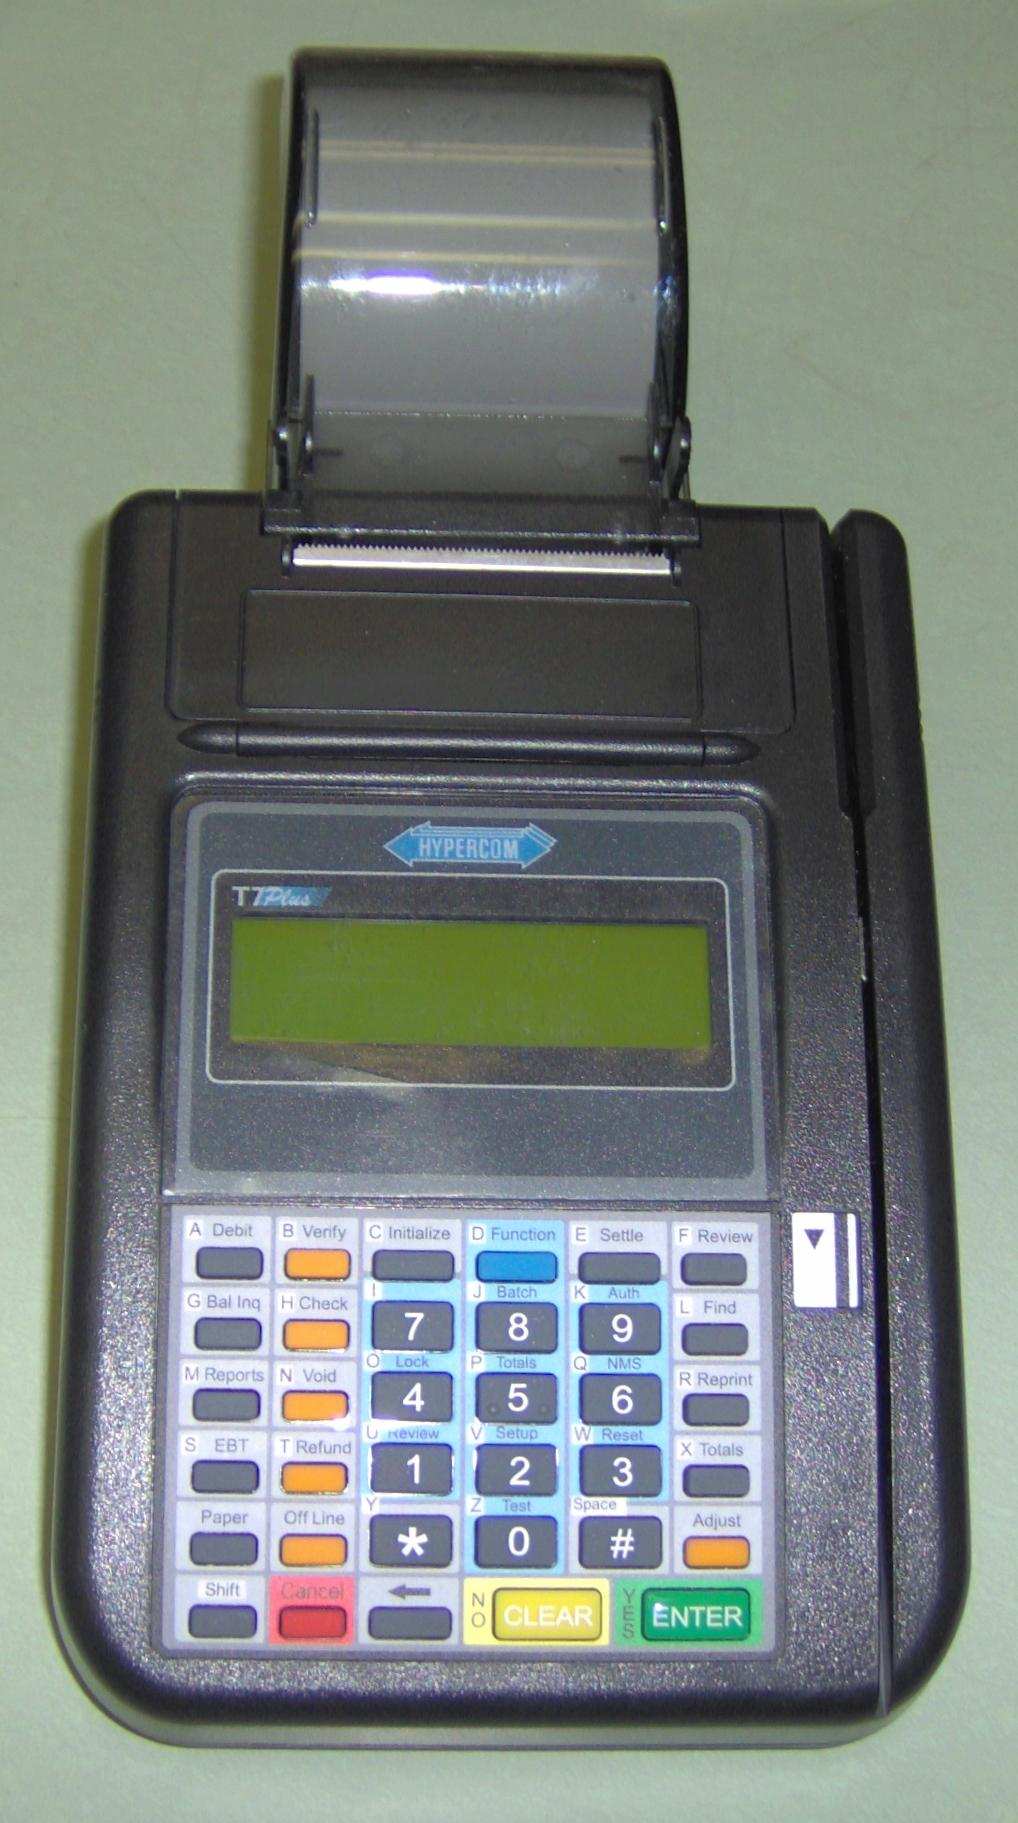 Hypercom T7plus Pos Terminals - Buy Hypercom T7plus Product on Alibaba.com